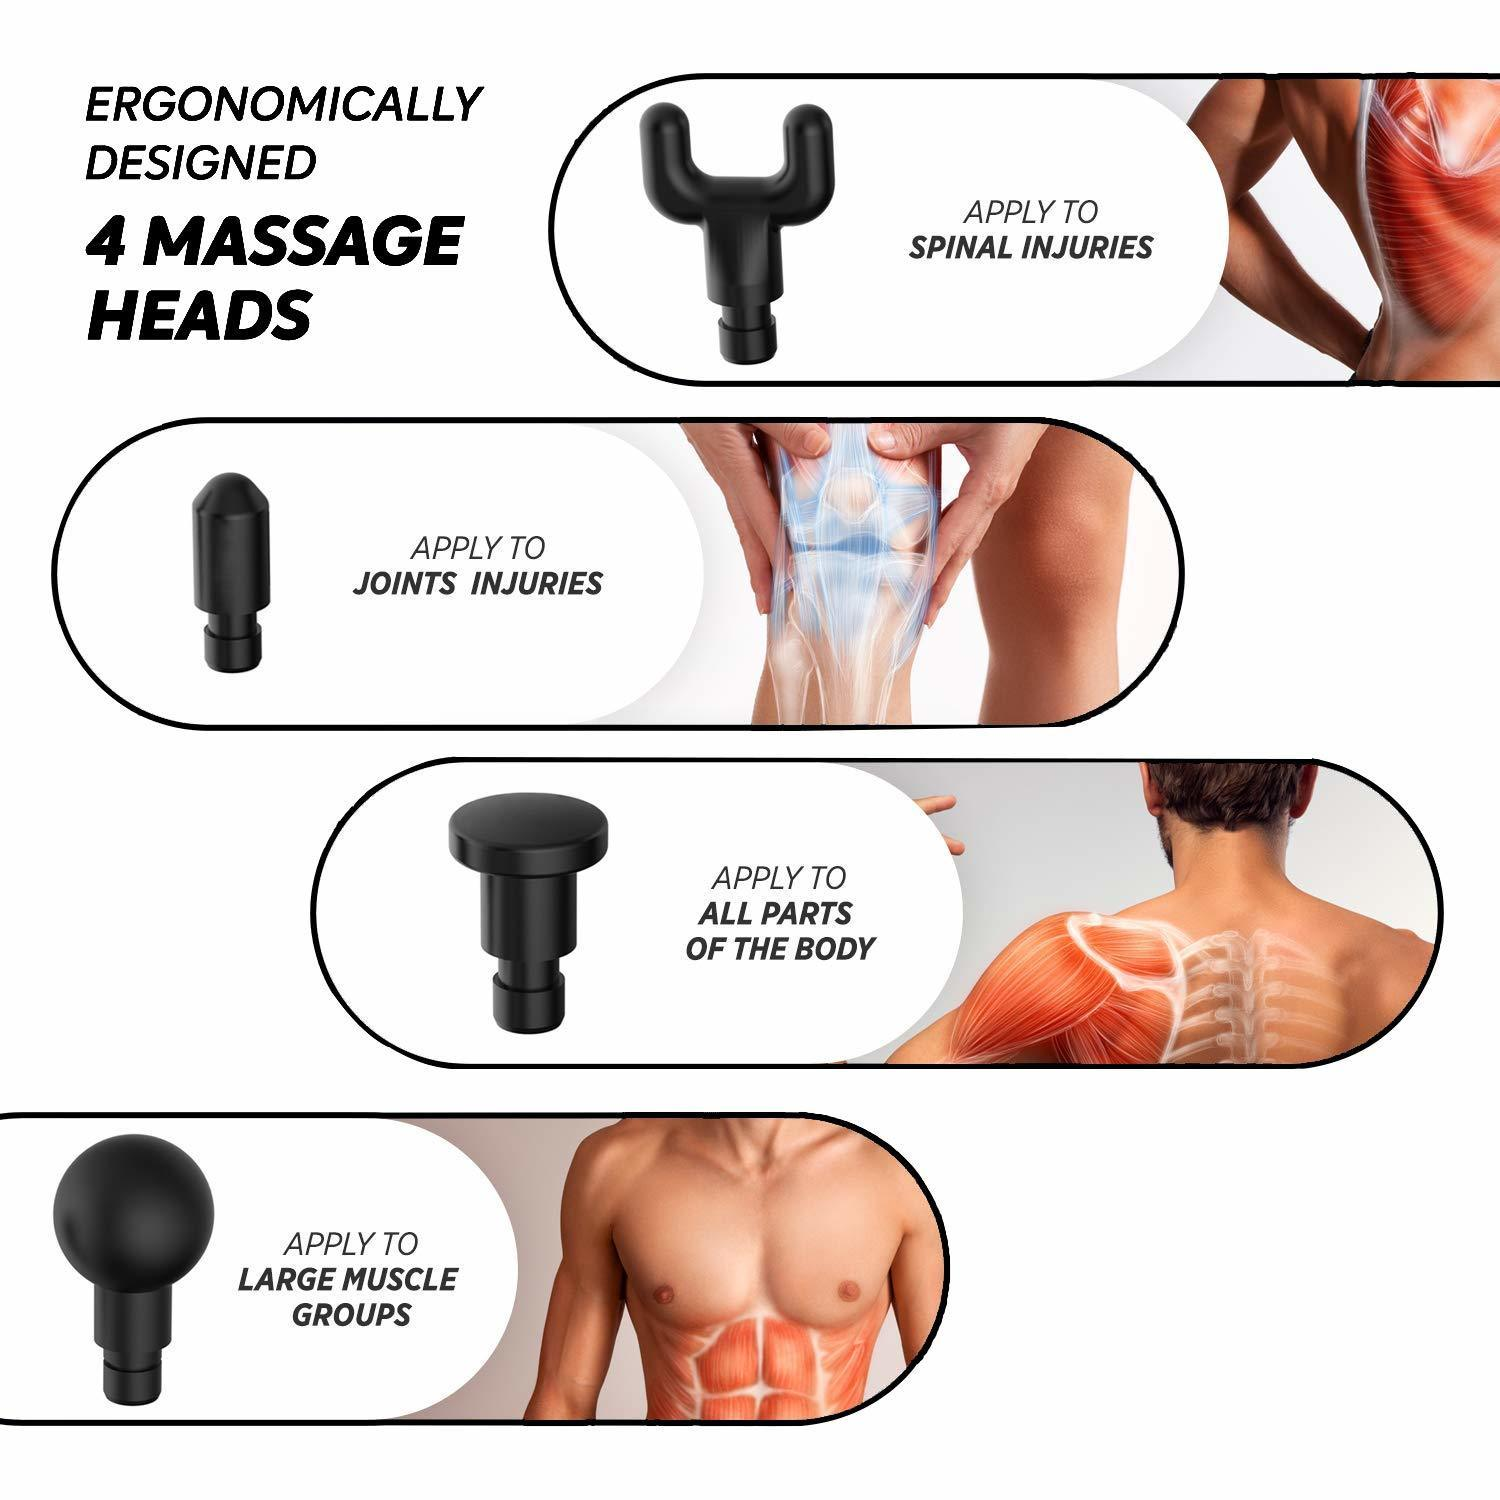 Phoenix A2 Muscle Massage Gun Deep Tissue Massager Therapy Gun Exercising Muscle Pain Relief Body Shaping - 6